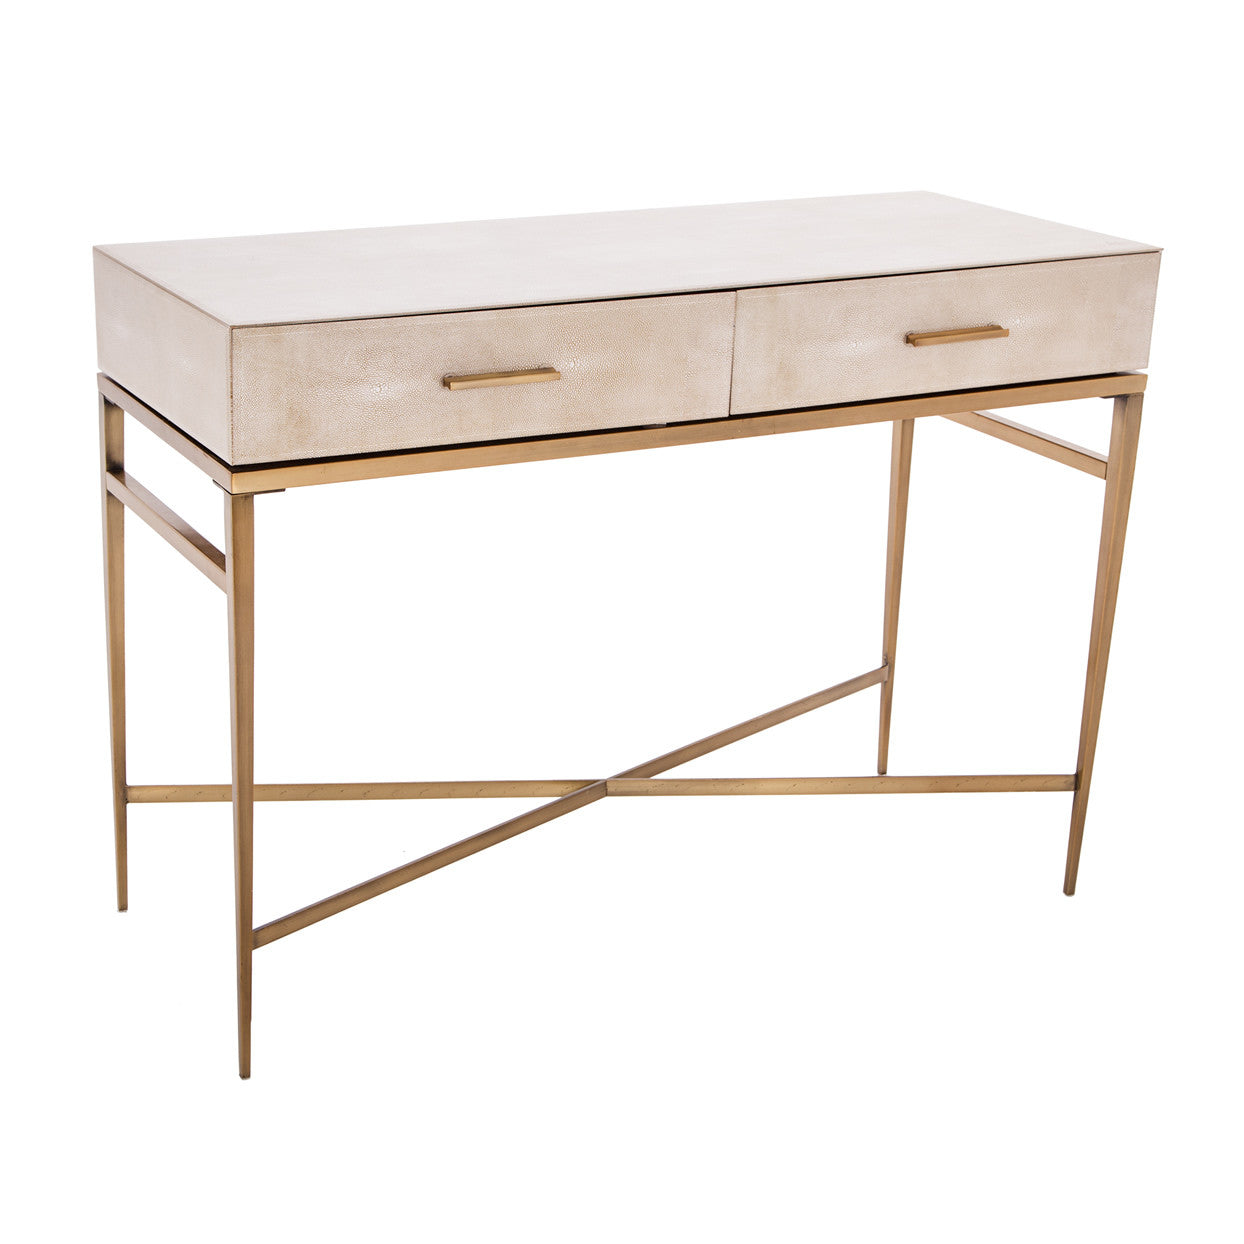 Picture of: Lucile Taupe Shagreen Gold Console Table Shropshire Design